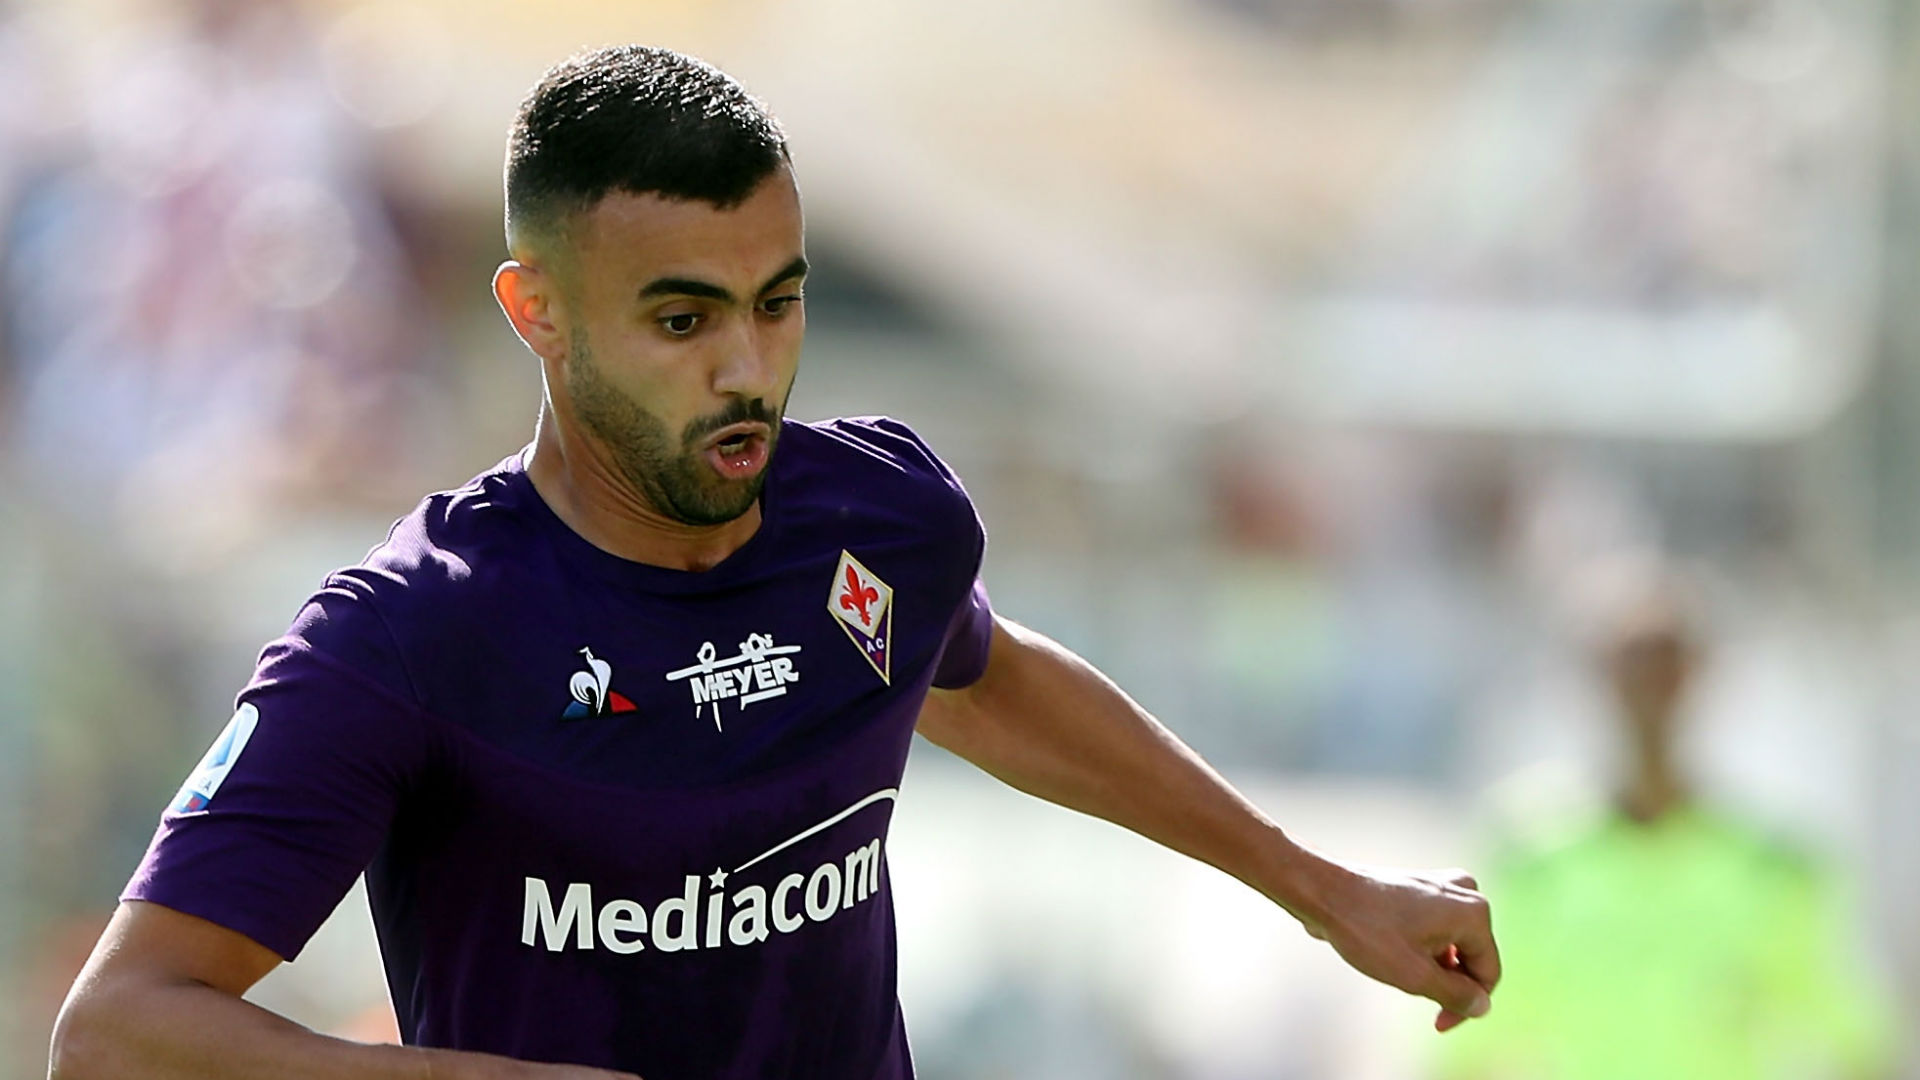 Leicester City flop Ghezzal joins Besiktas on loan